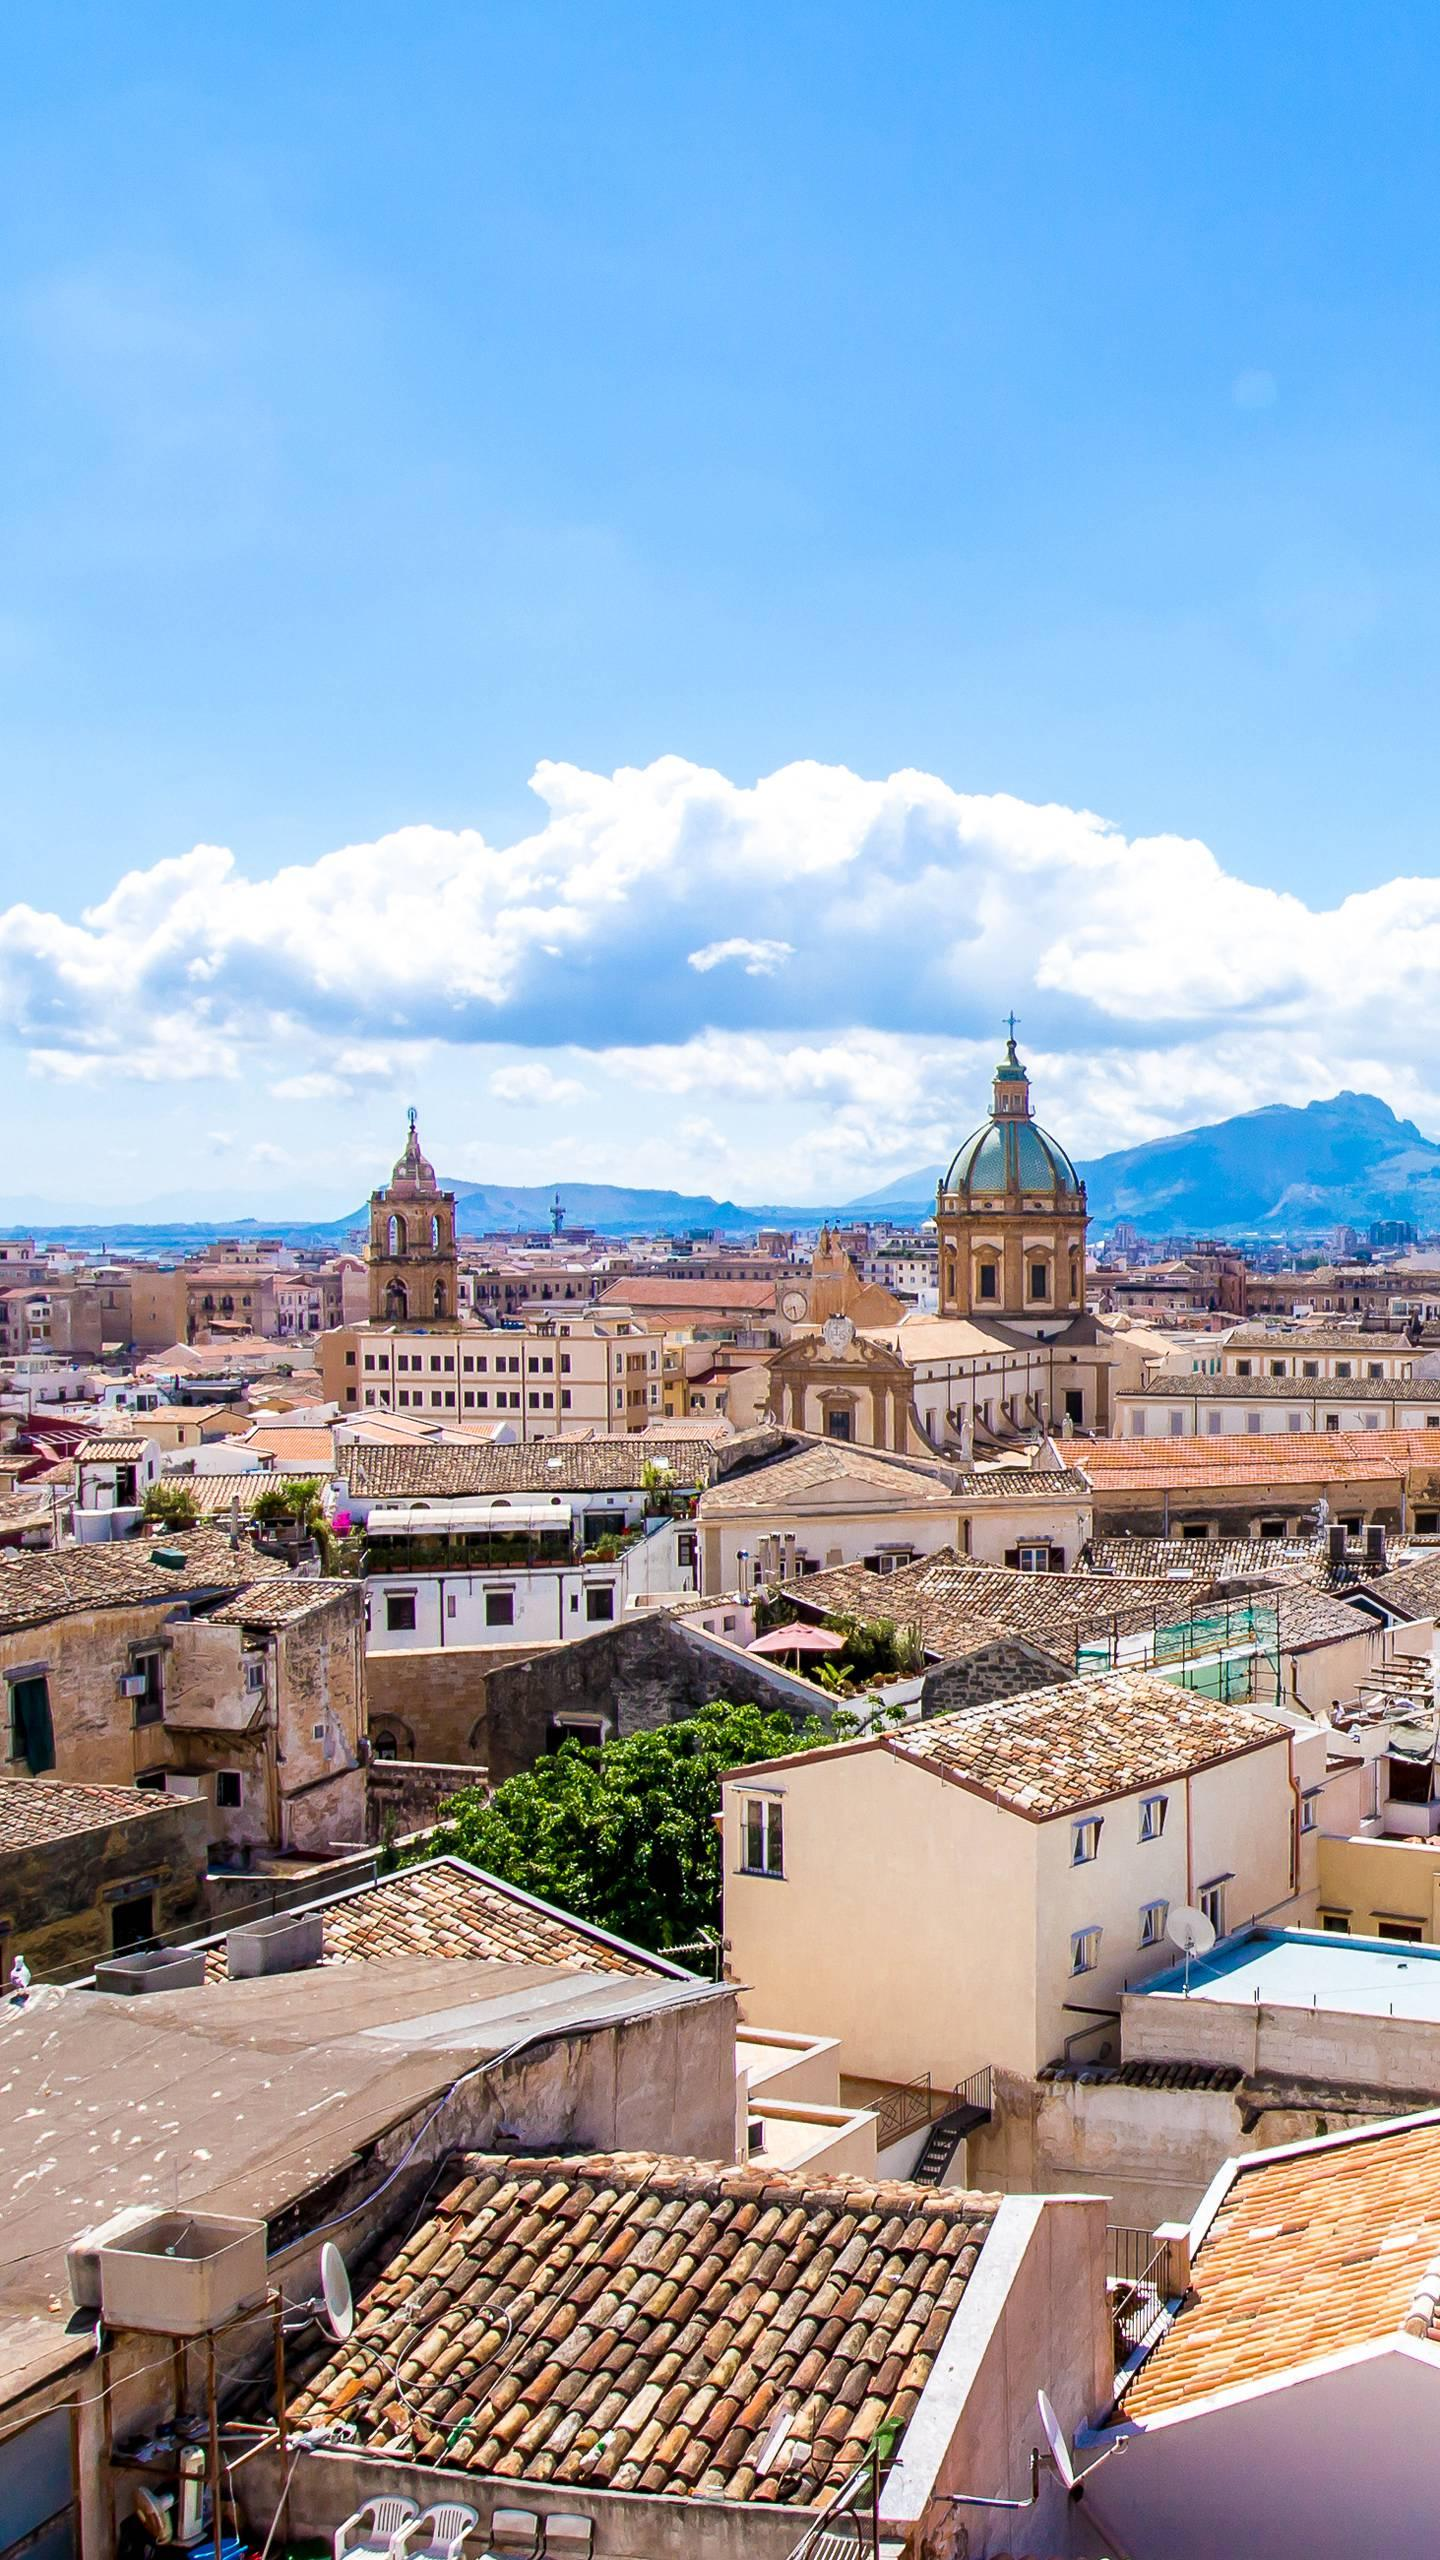 Italy - Sicily. Sicily is a subtle land with a fascinating natural and cultural landscape.